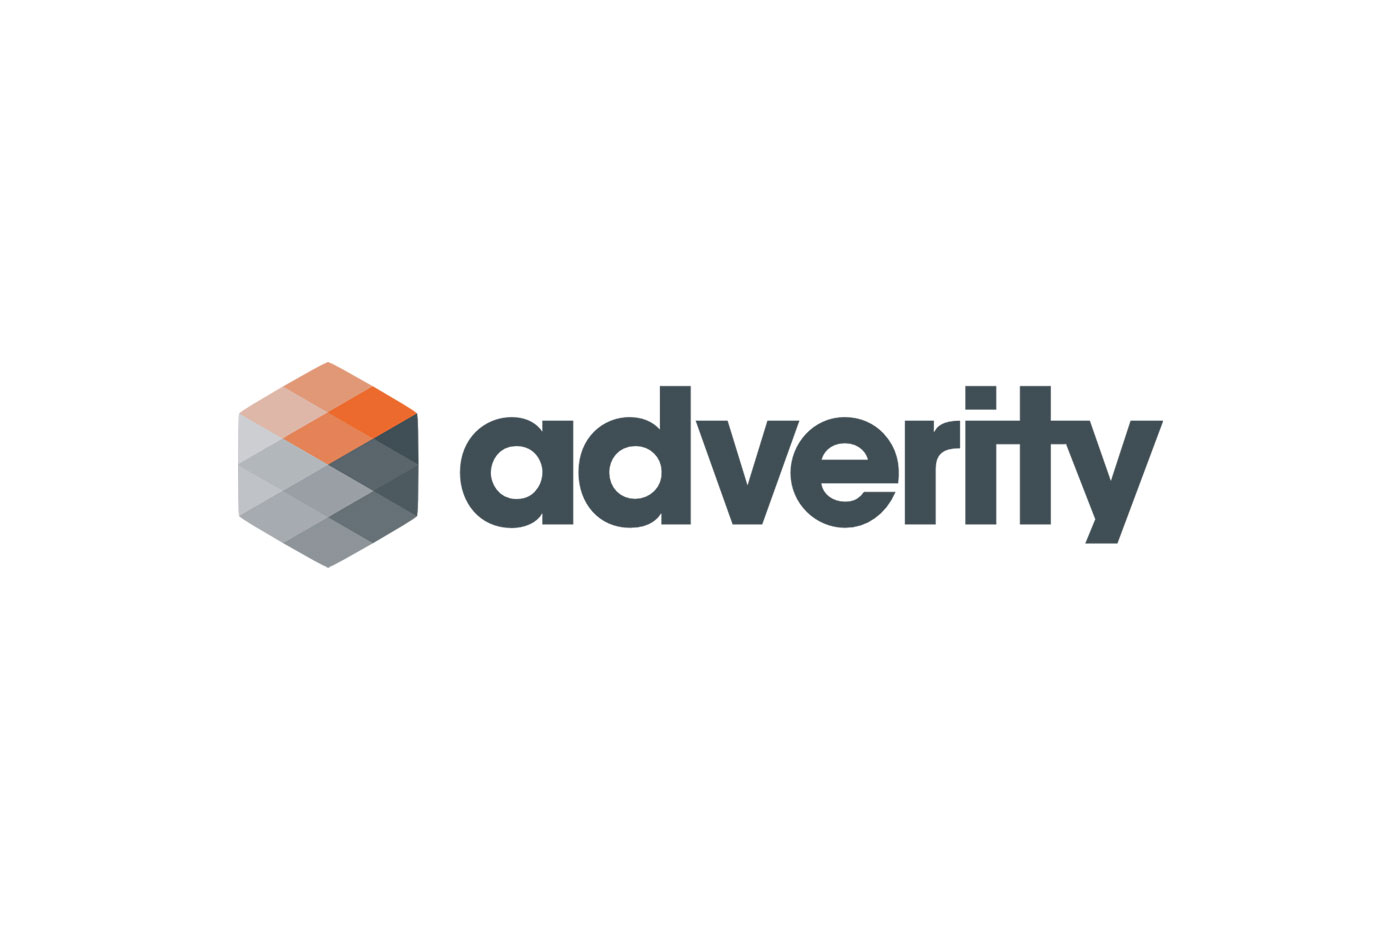 Adverity